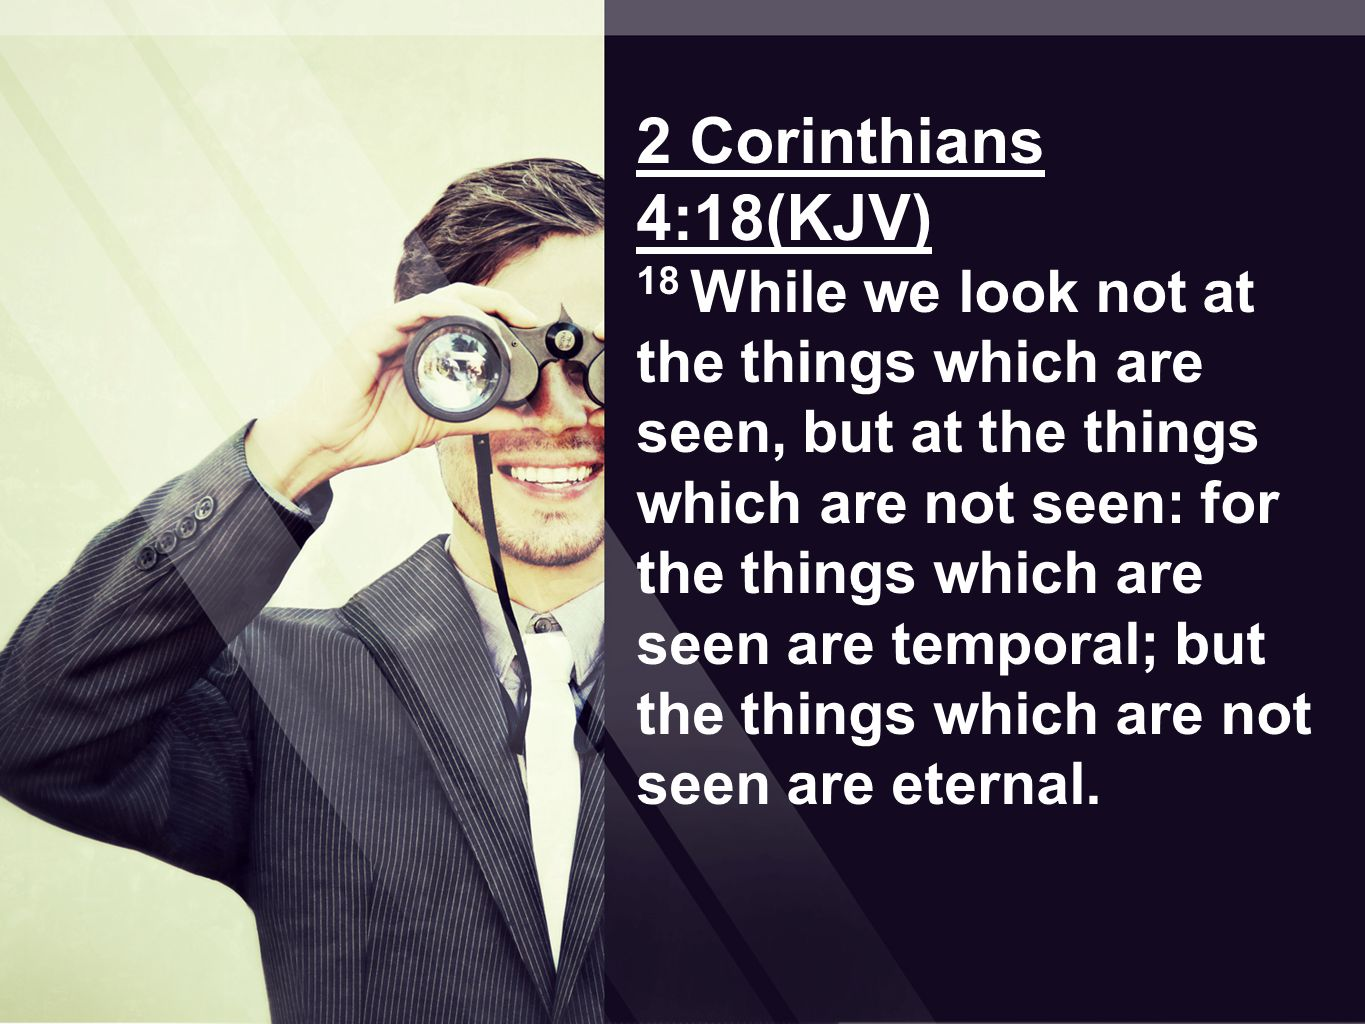 2 Corinthians 4:18(KJV) 18 While we look not at the things which are seen, but at the things which are not seen: for the things which are seen are temporal; but the things which are not seen are eternal.